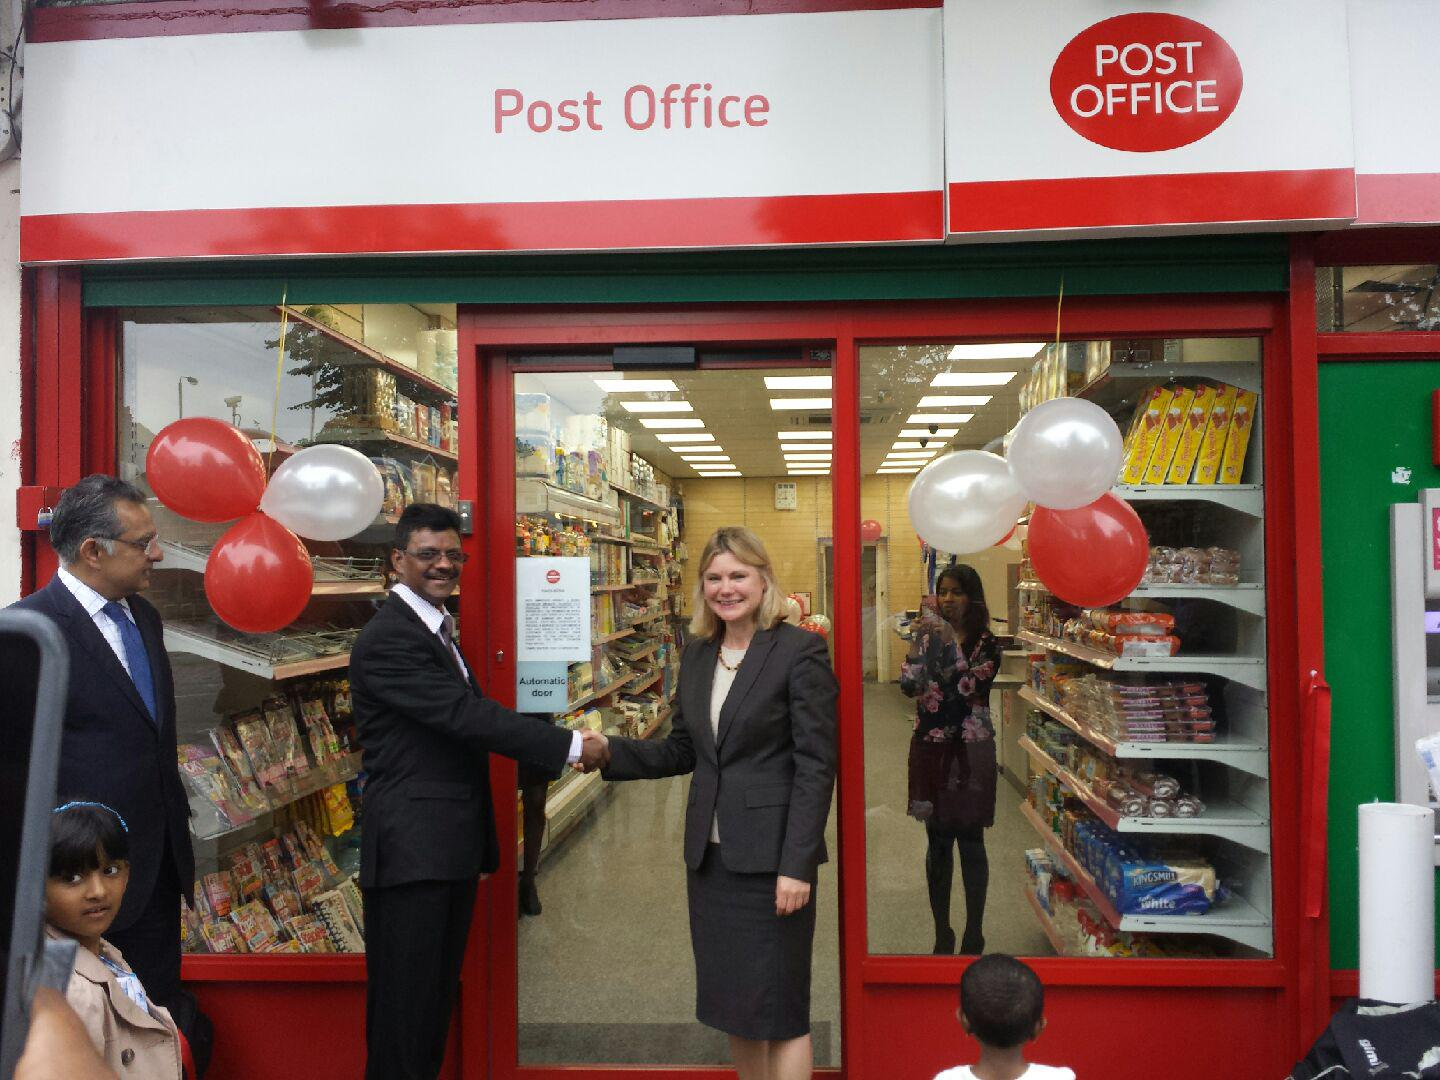 Justine greening on twitter danebury ave post office is open it 39 s now a main post office with - Post office working today ...